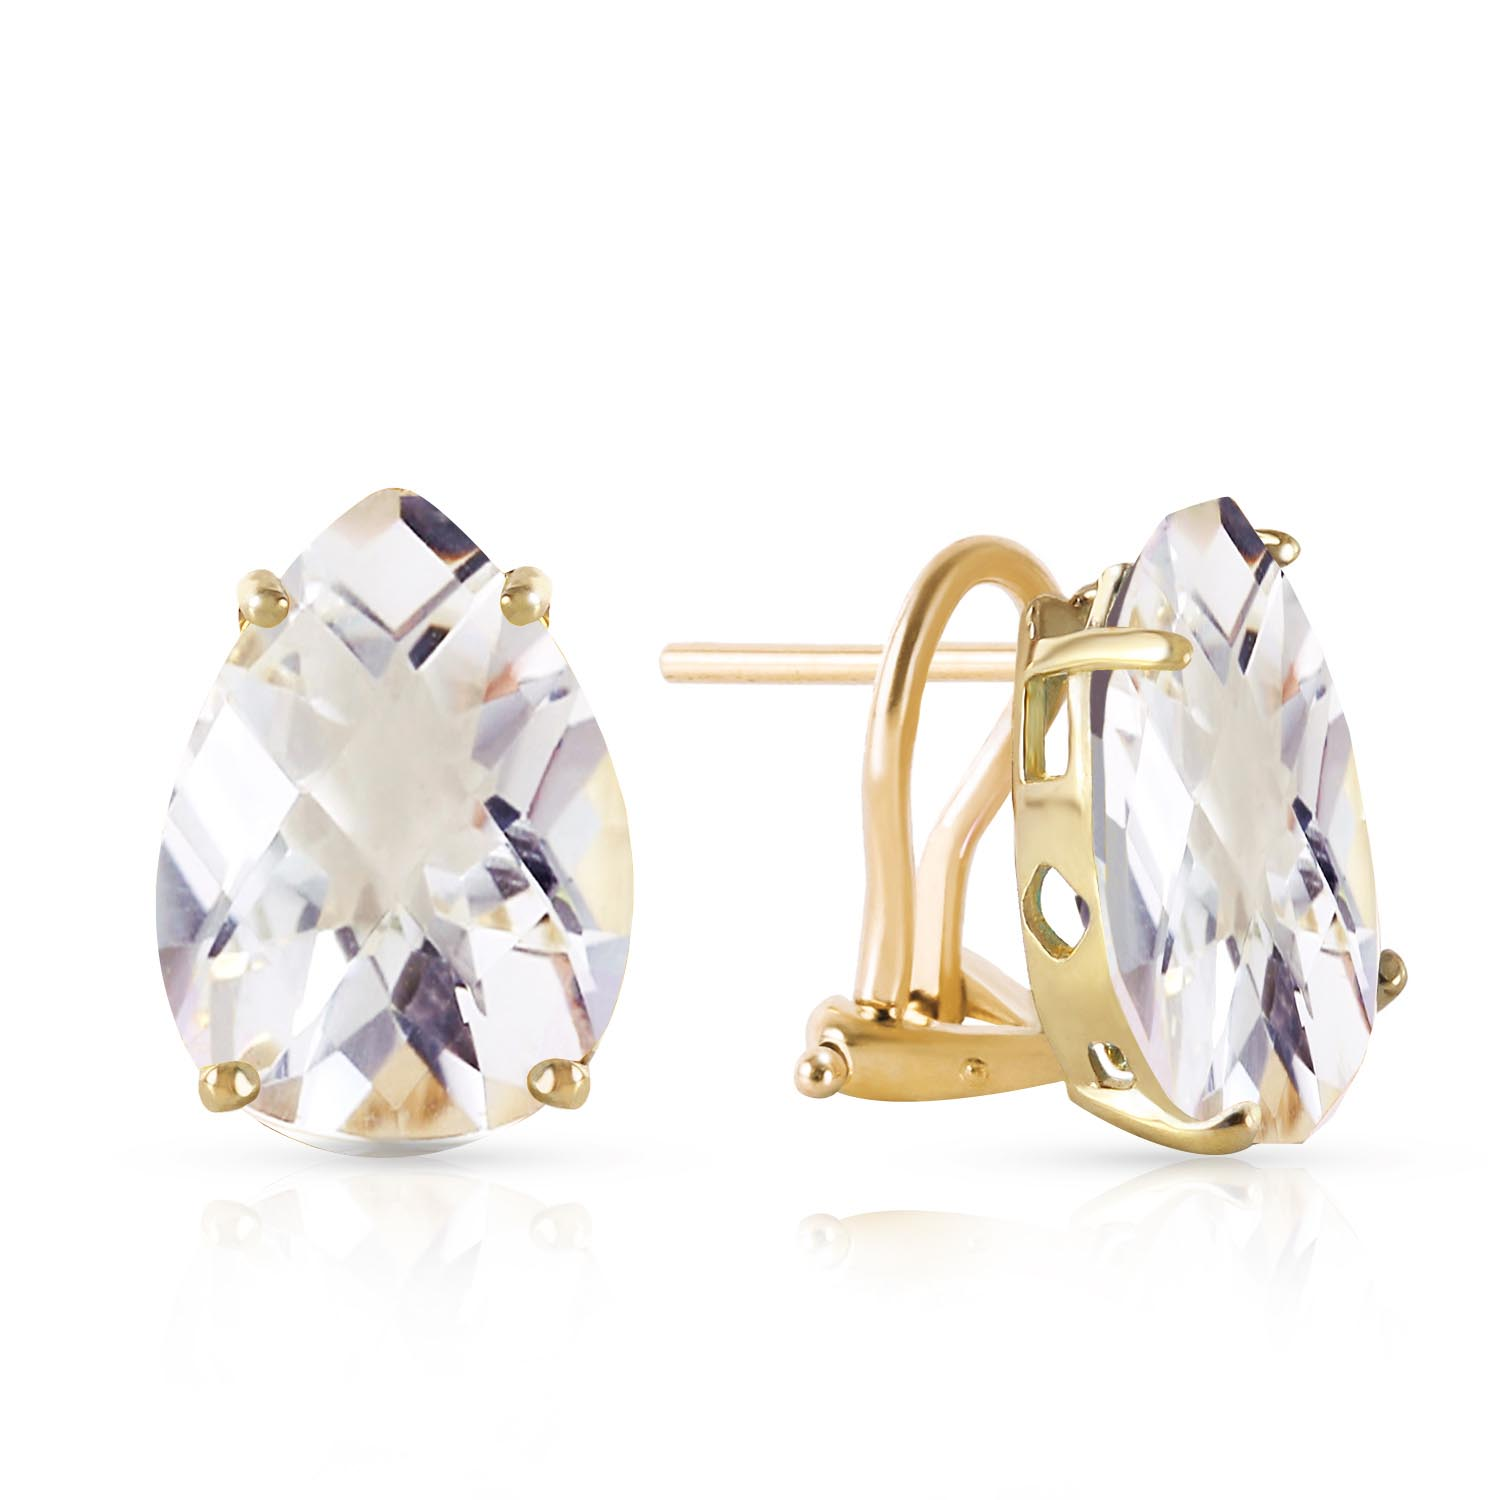 White Topaz Droplet Stud Earrings 10 ctw in 9ct Gold